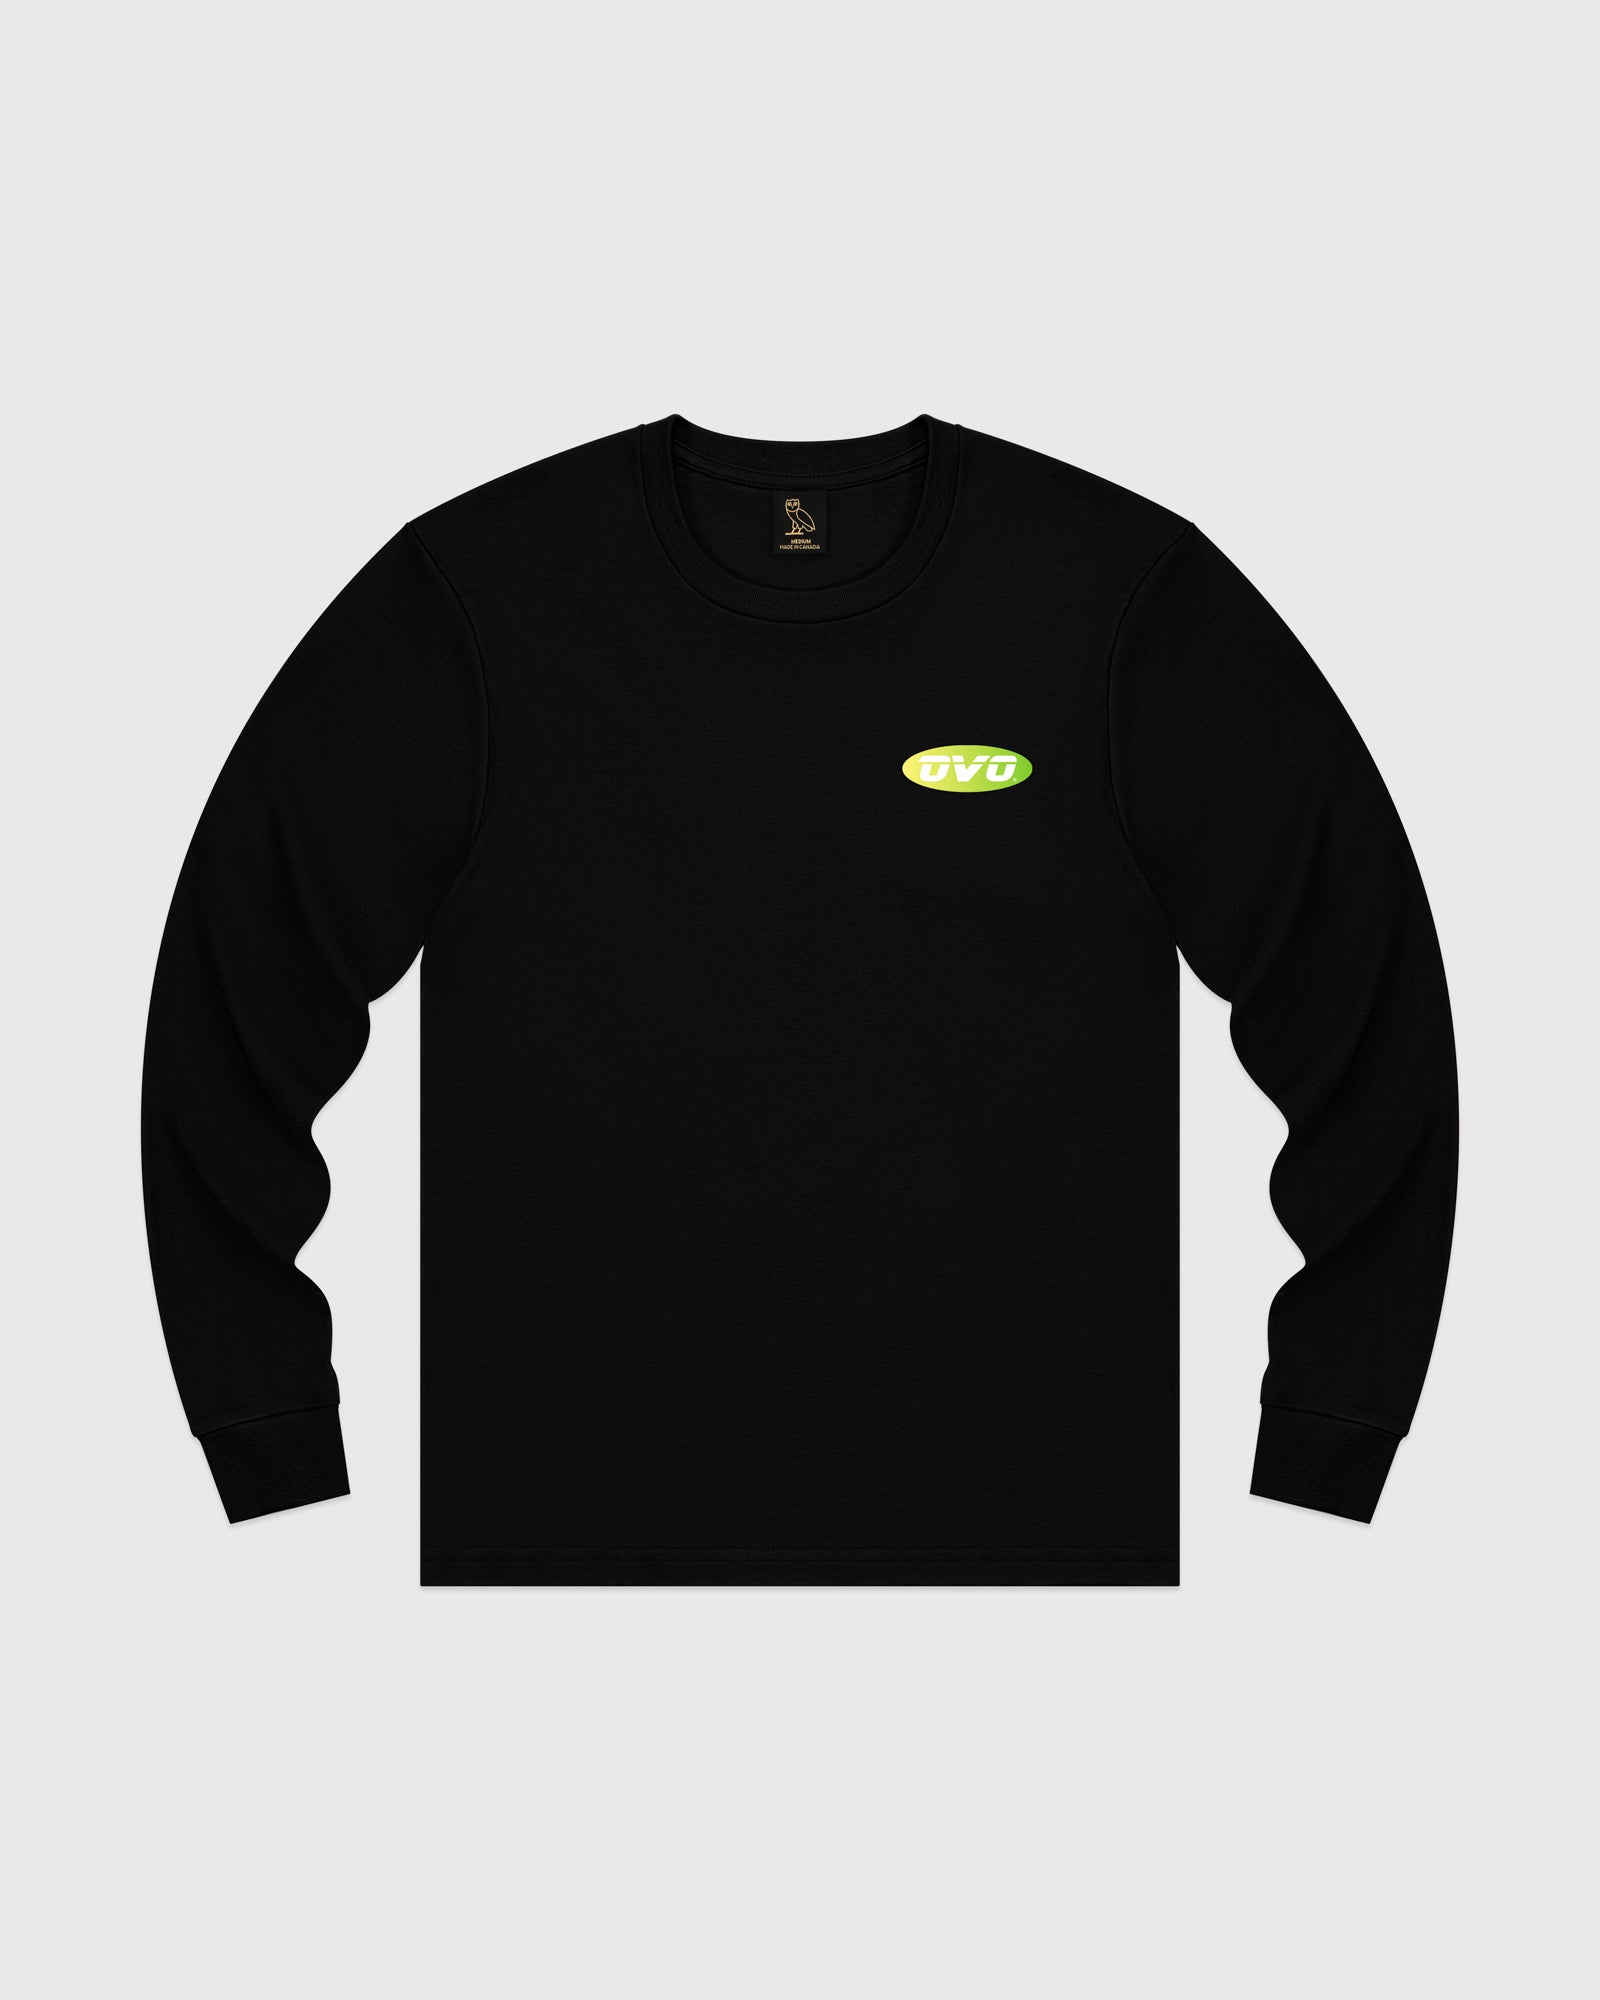 SUNSET RUNNER LONGSLEEVE T-SHIRT - BLACK IMAGE #1